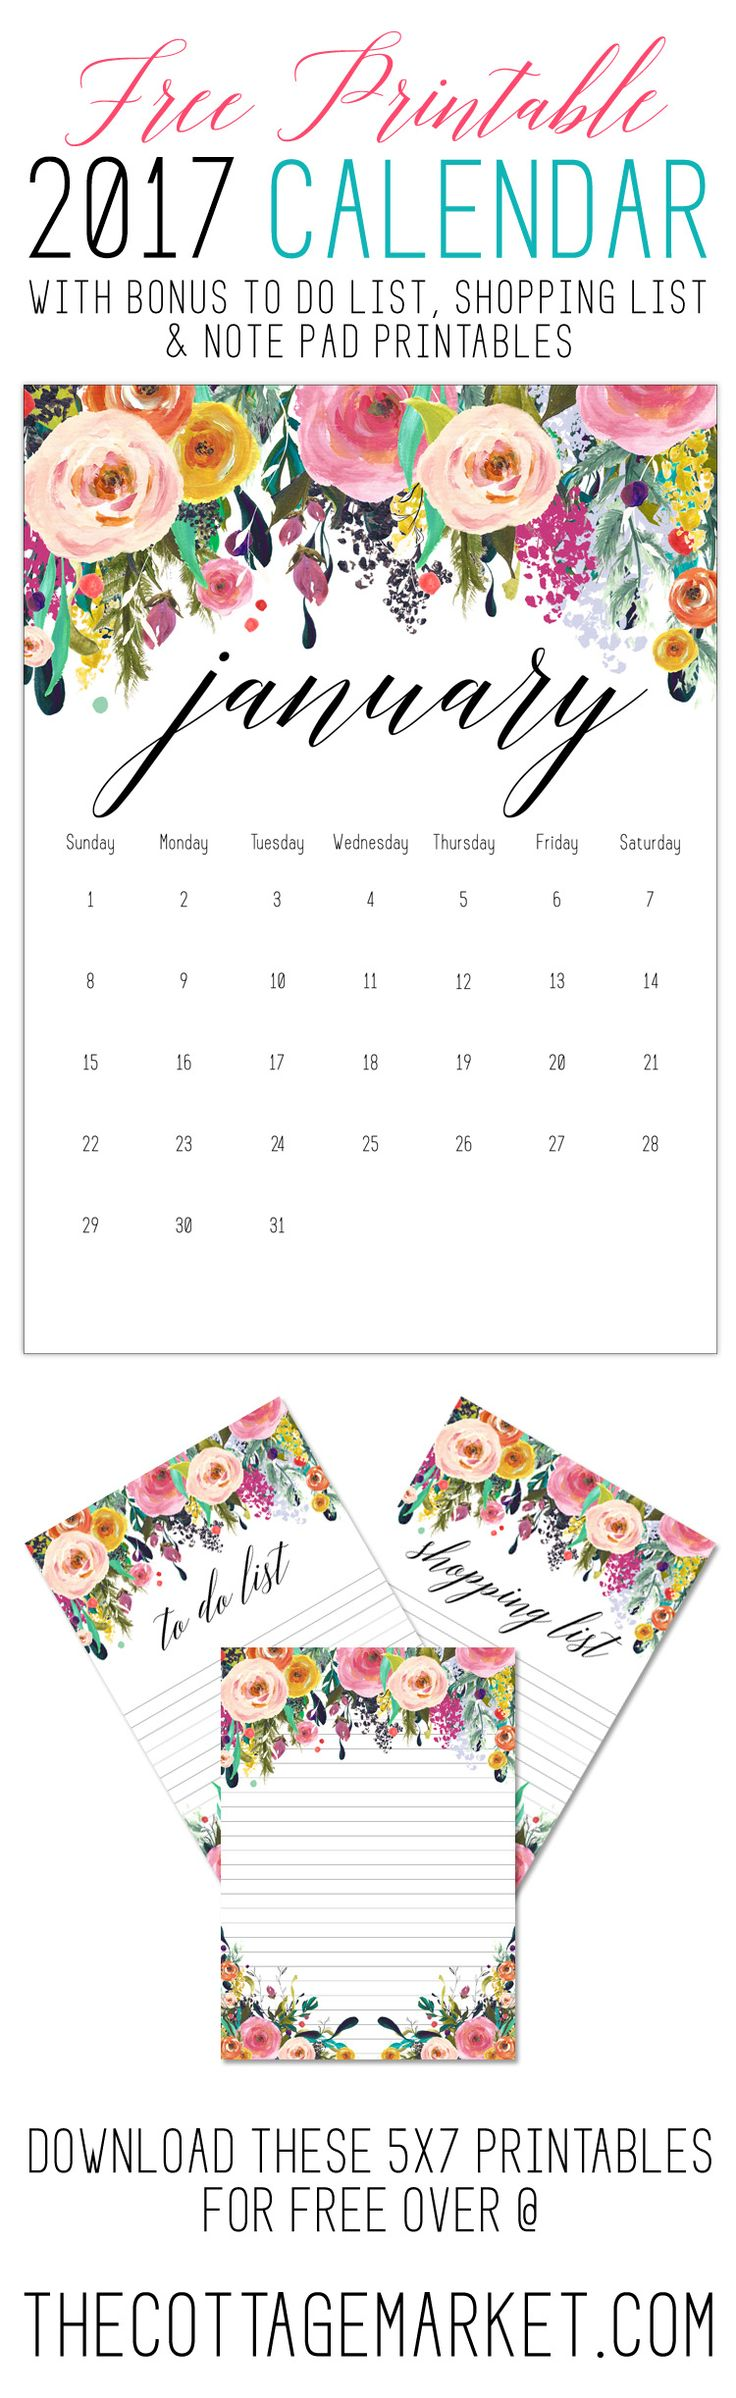 Free Printable Floral 2017 Calendar that you will love and want to share with family and friends!